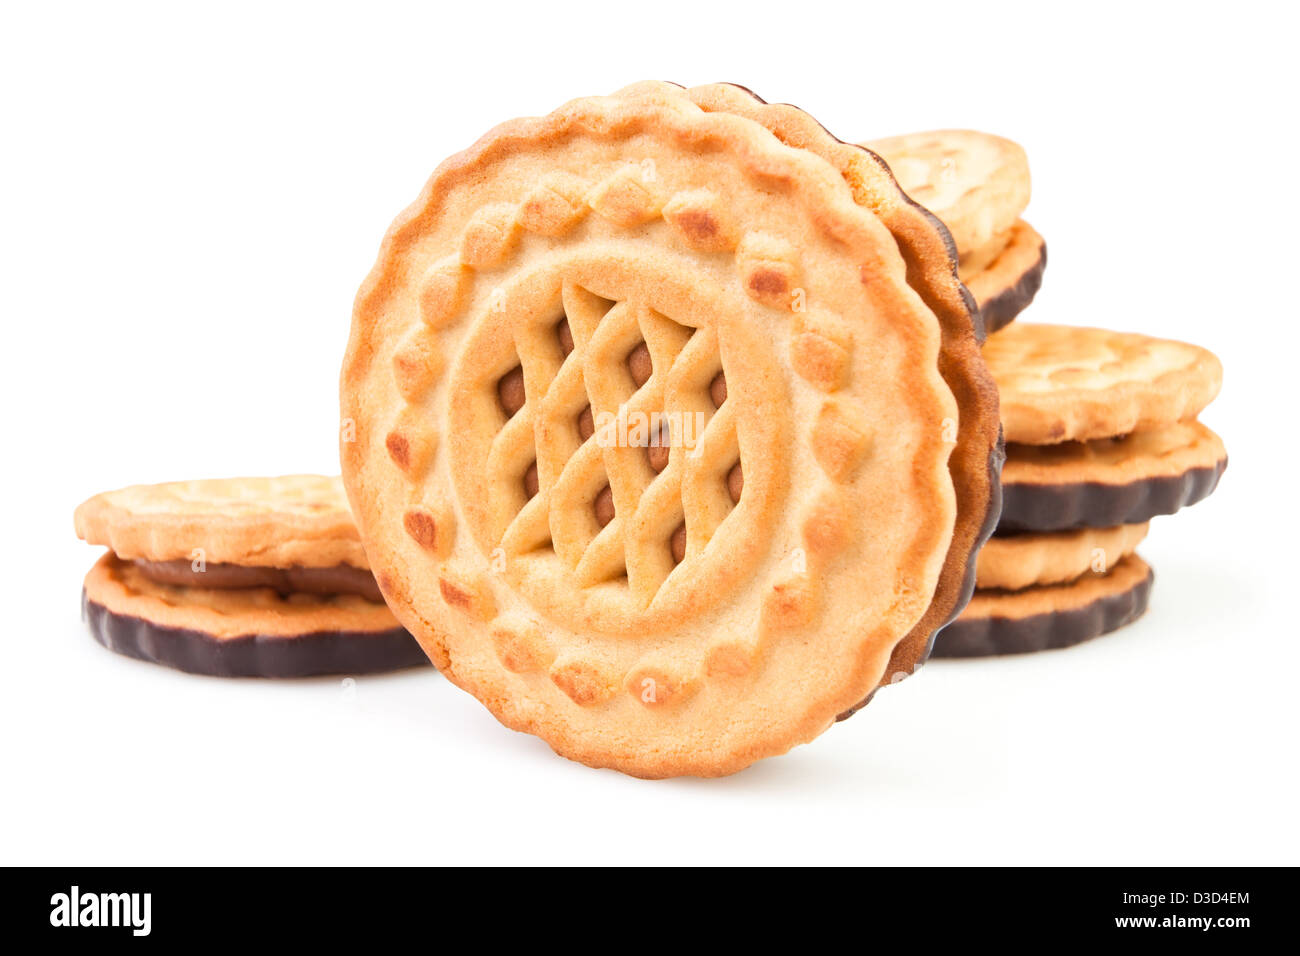 cookie group on white background - Stock Image